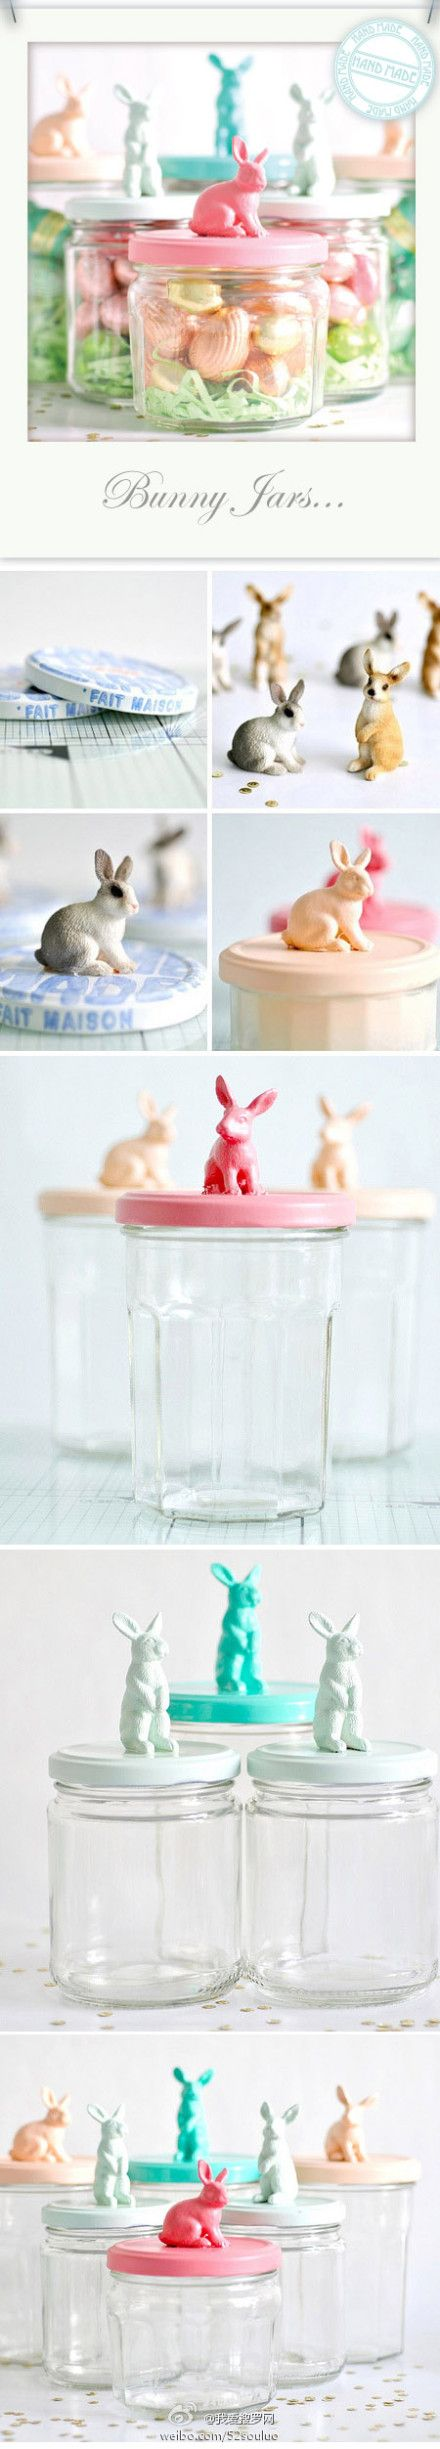 bunny jar topper tutorial - for Easter